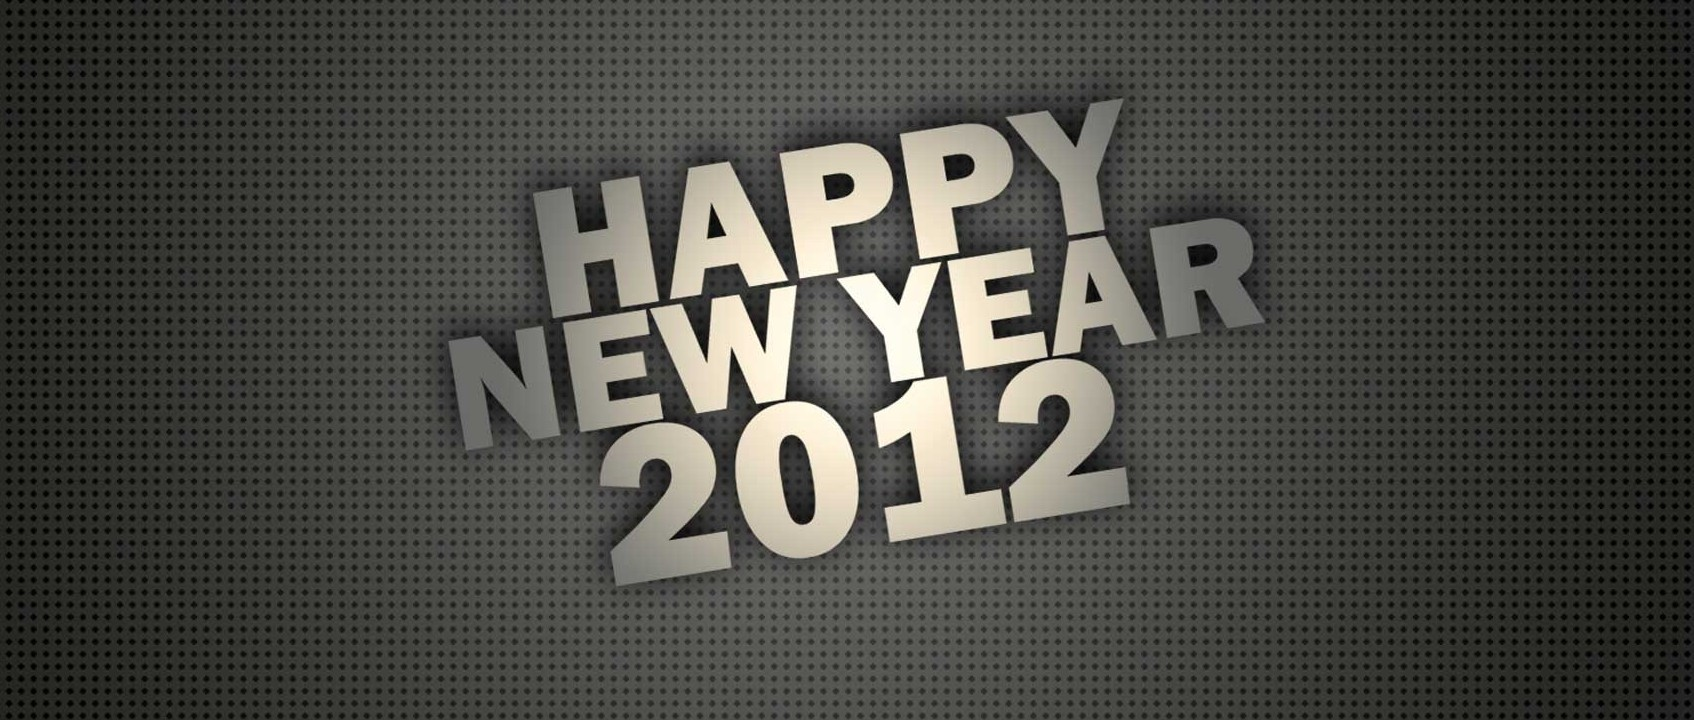 Happy-New-Year-2012-Wallpaper